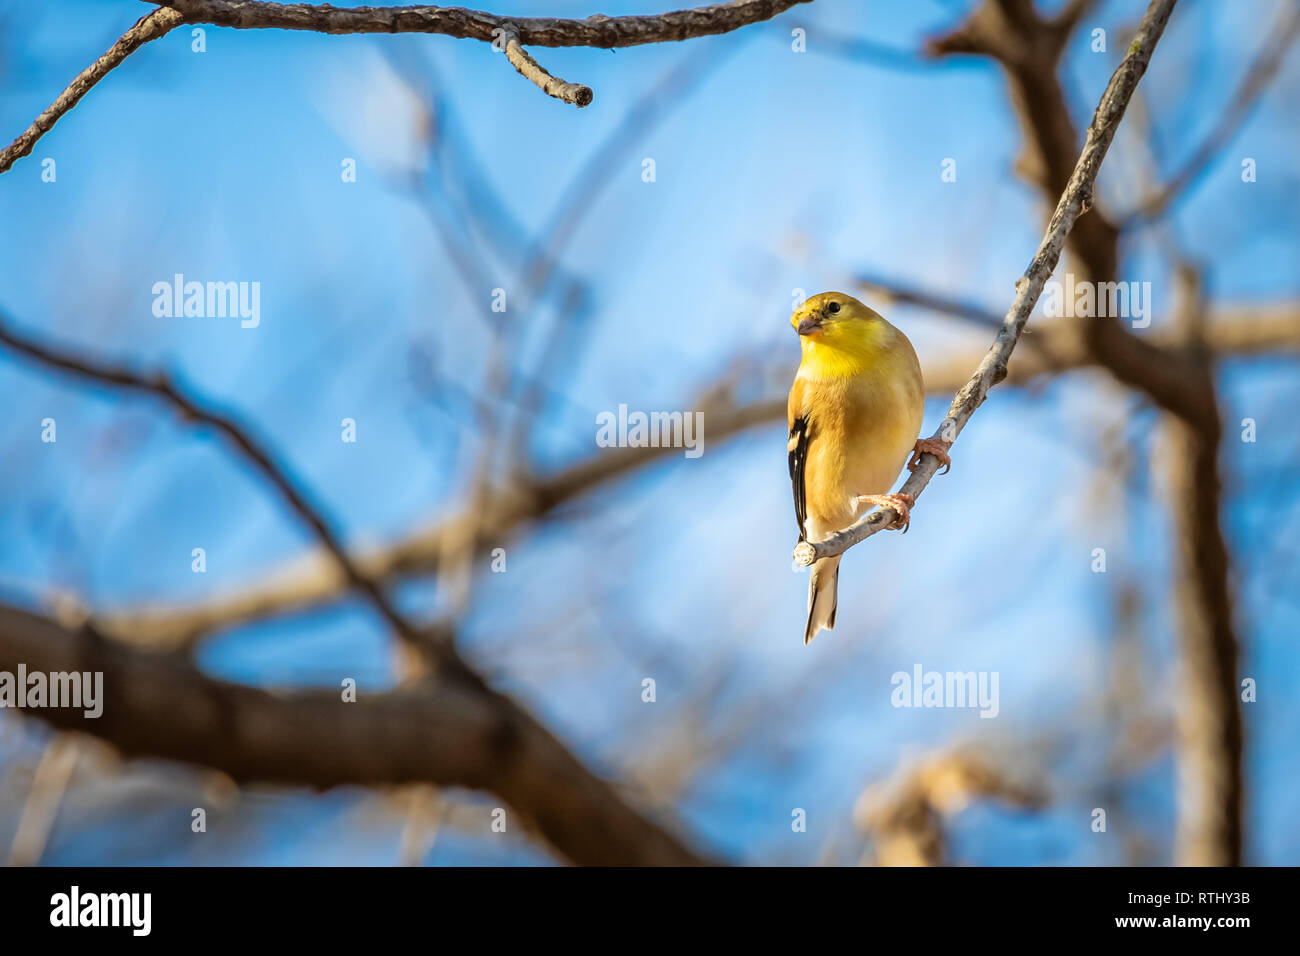 American Goldfinch (Spinus tristis) at a feeder. - Stock Image